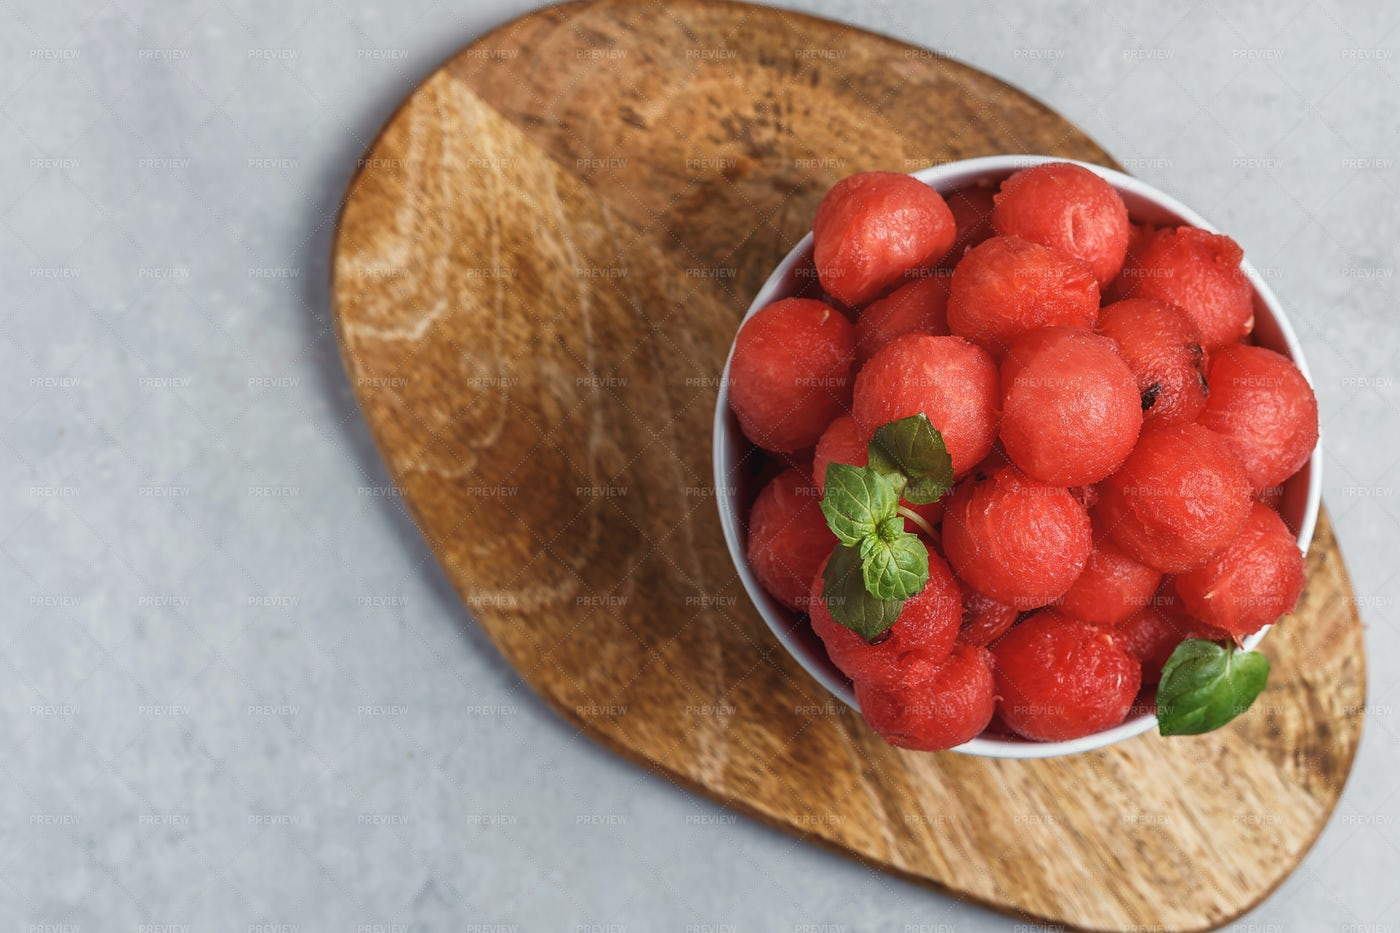 Salad With Watermelon Balls And Mint: Stock Photos